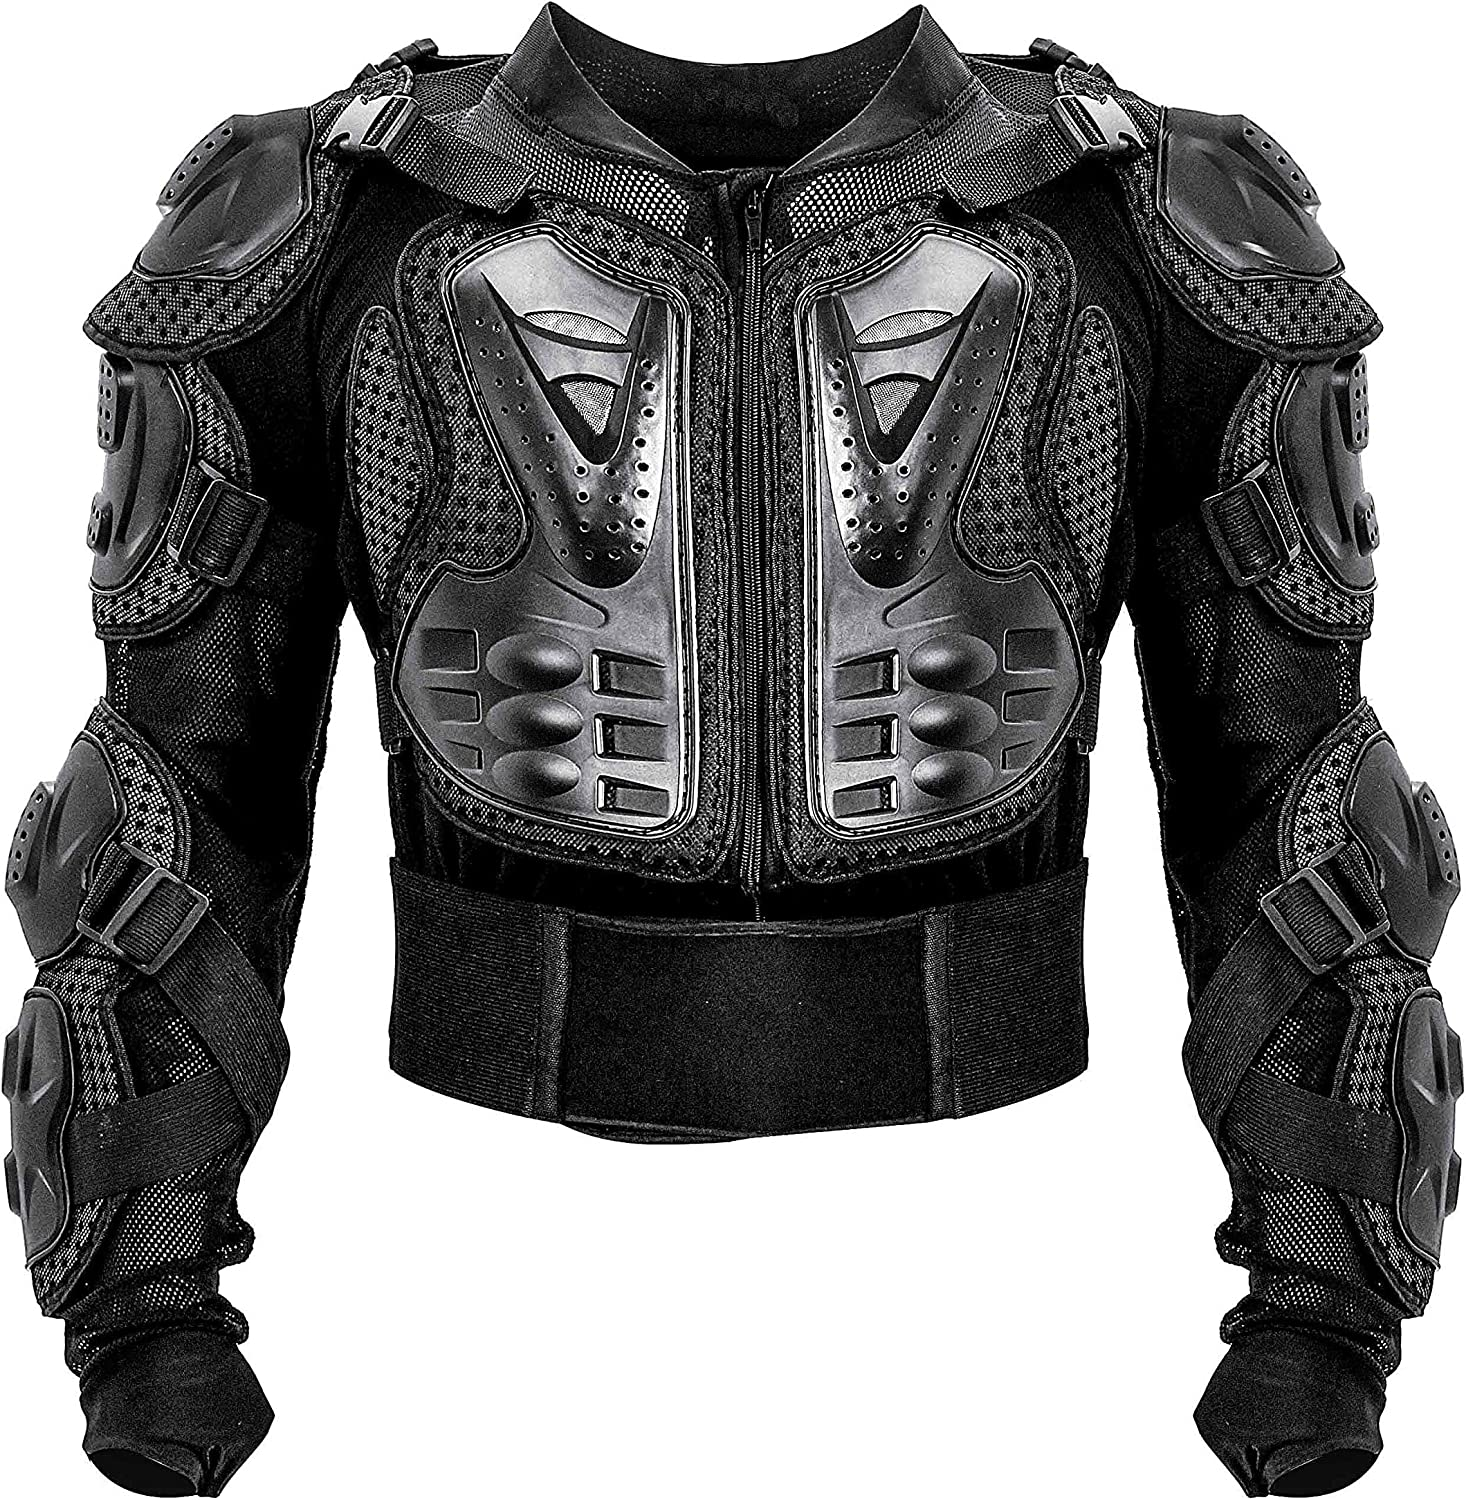 Motorcycle Full Body online shopping Armor Protective Guard Jacket Shirt Max 68% OFF ATV Gea